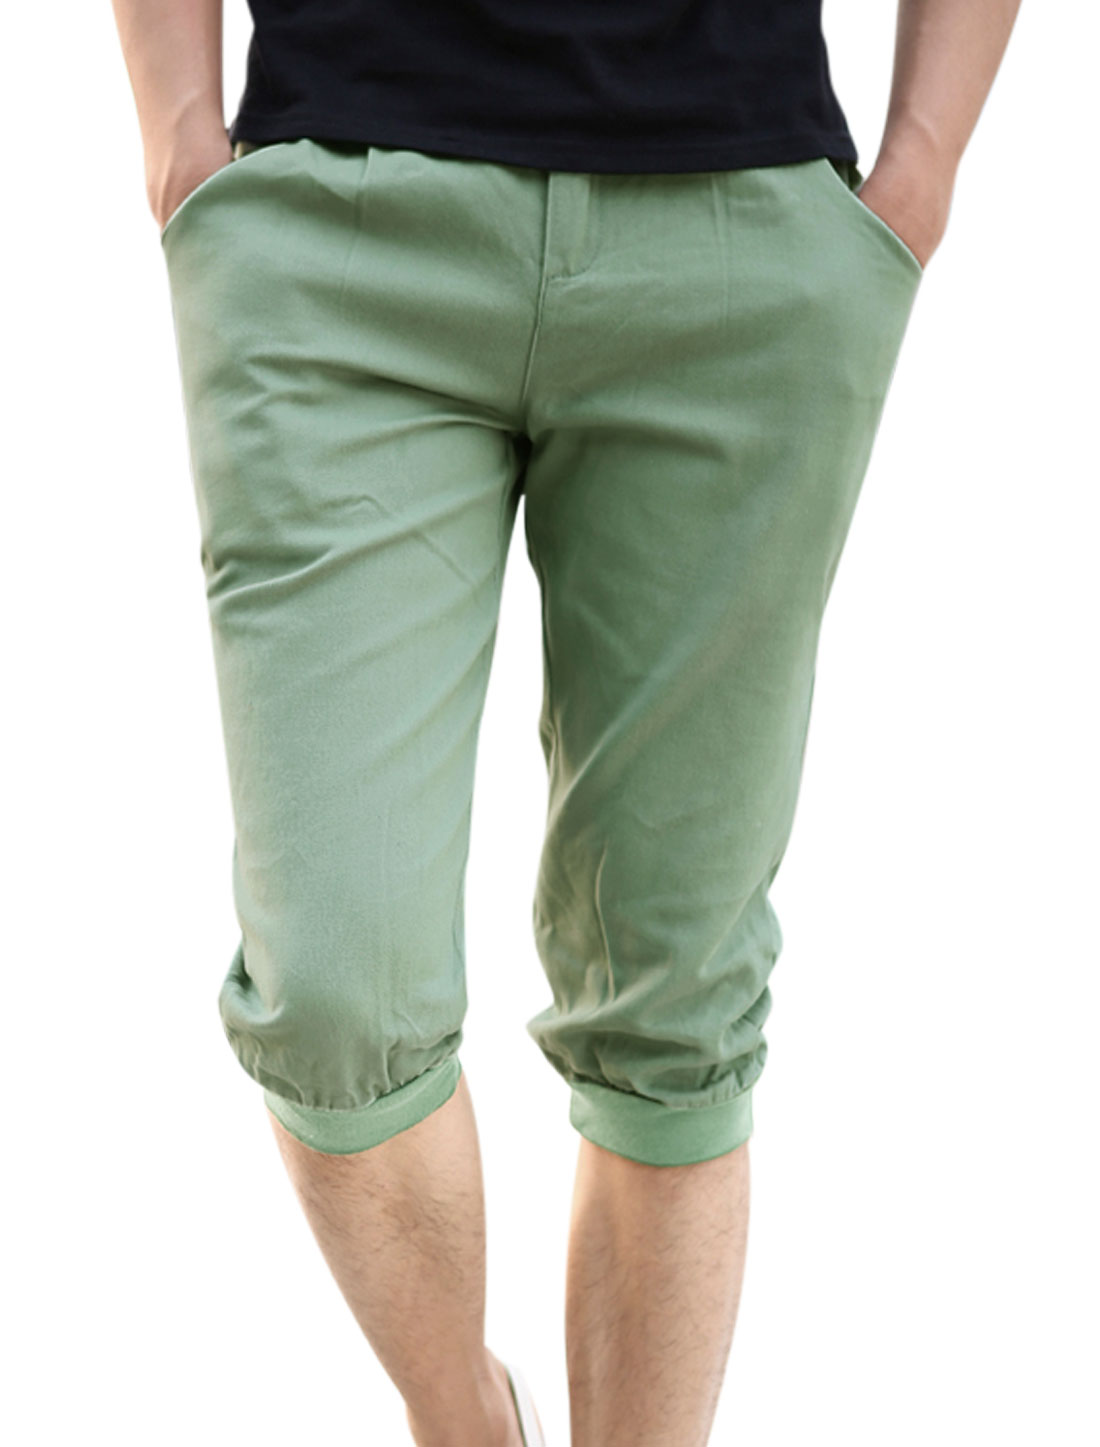 Casual Zip Fly Ribbed Patched Cuffs Capris Pants for Men Mint W32